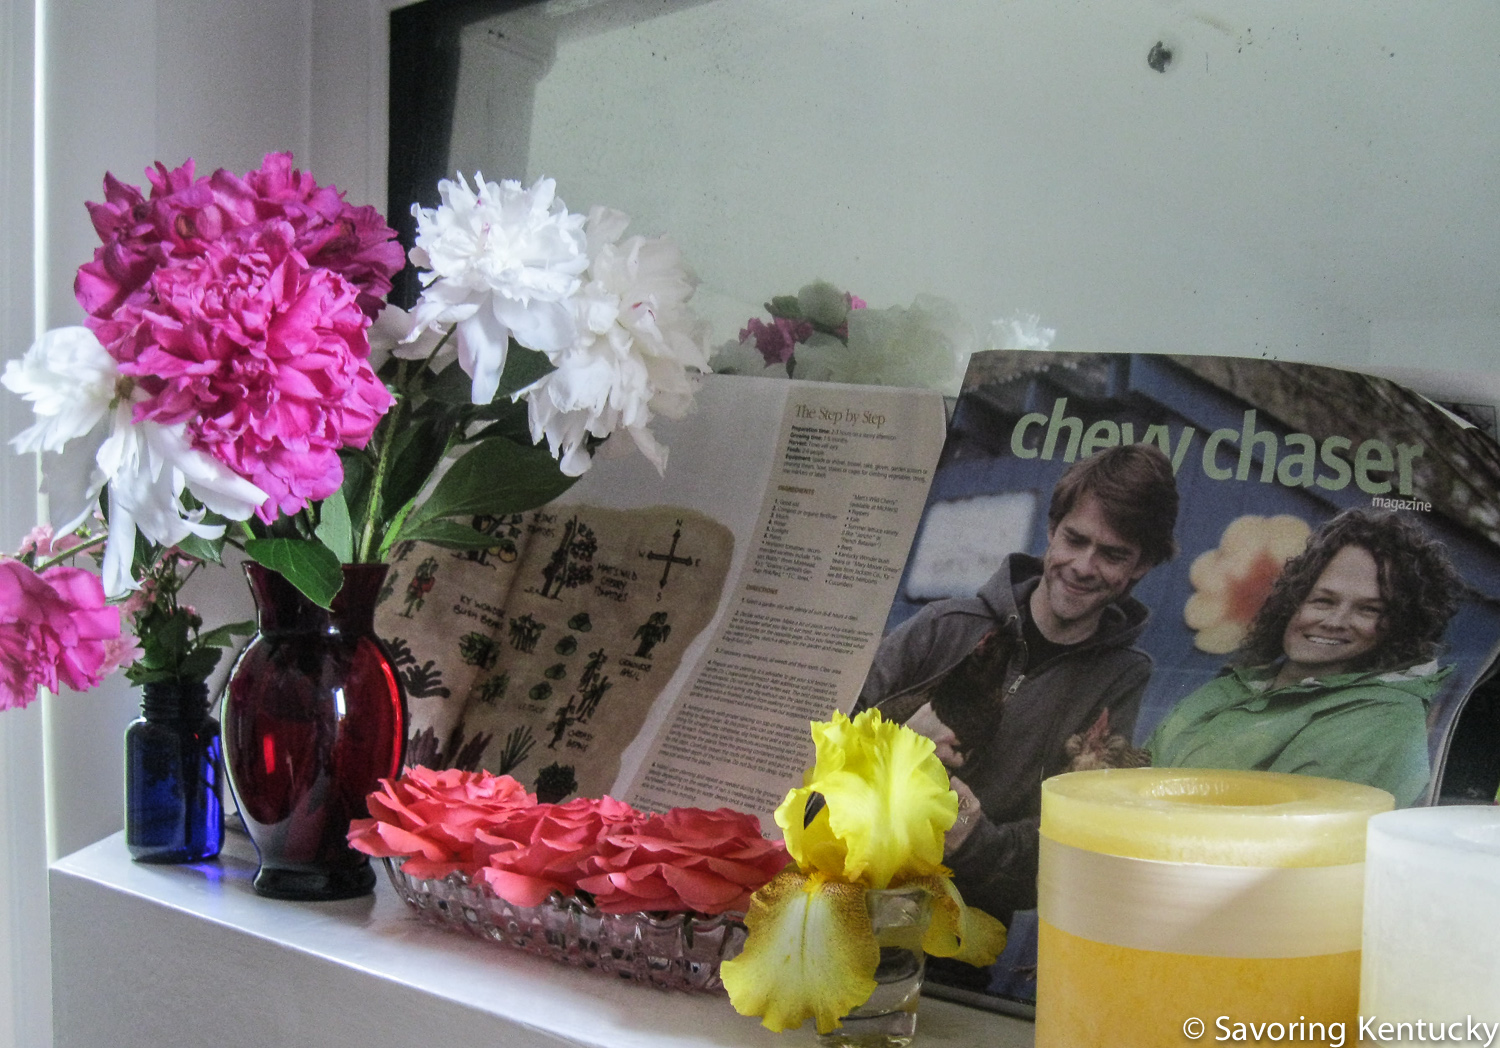 Flowers and candles at the ready, making an impromptu shrine to some of our beloved friends and constant inspirations.